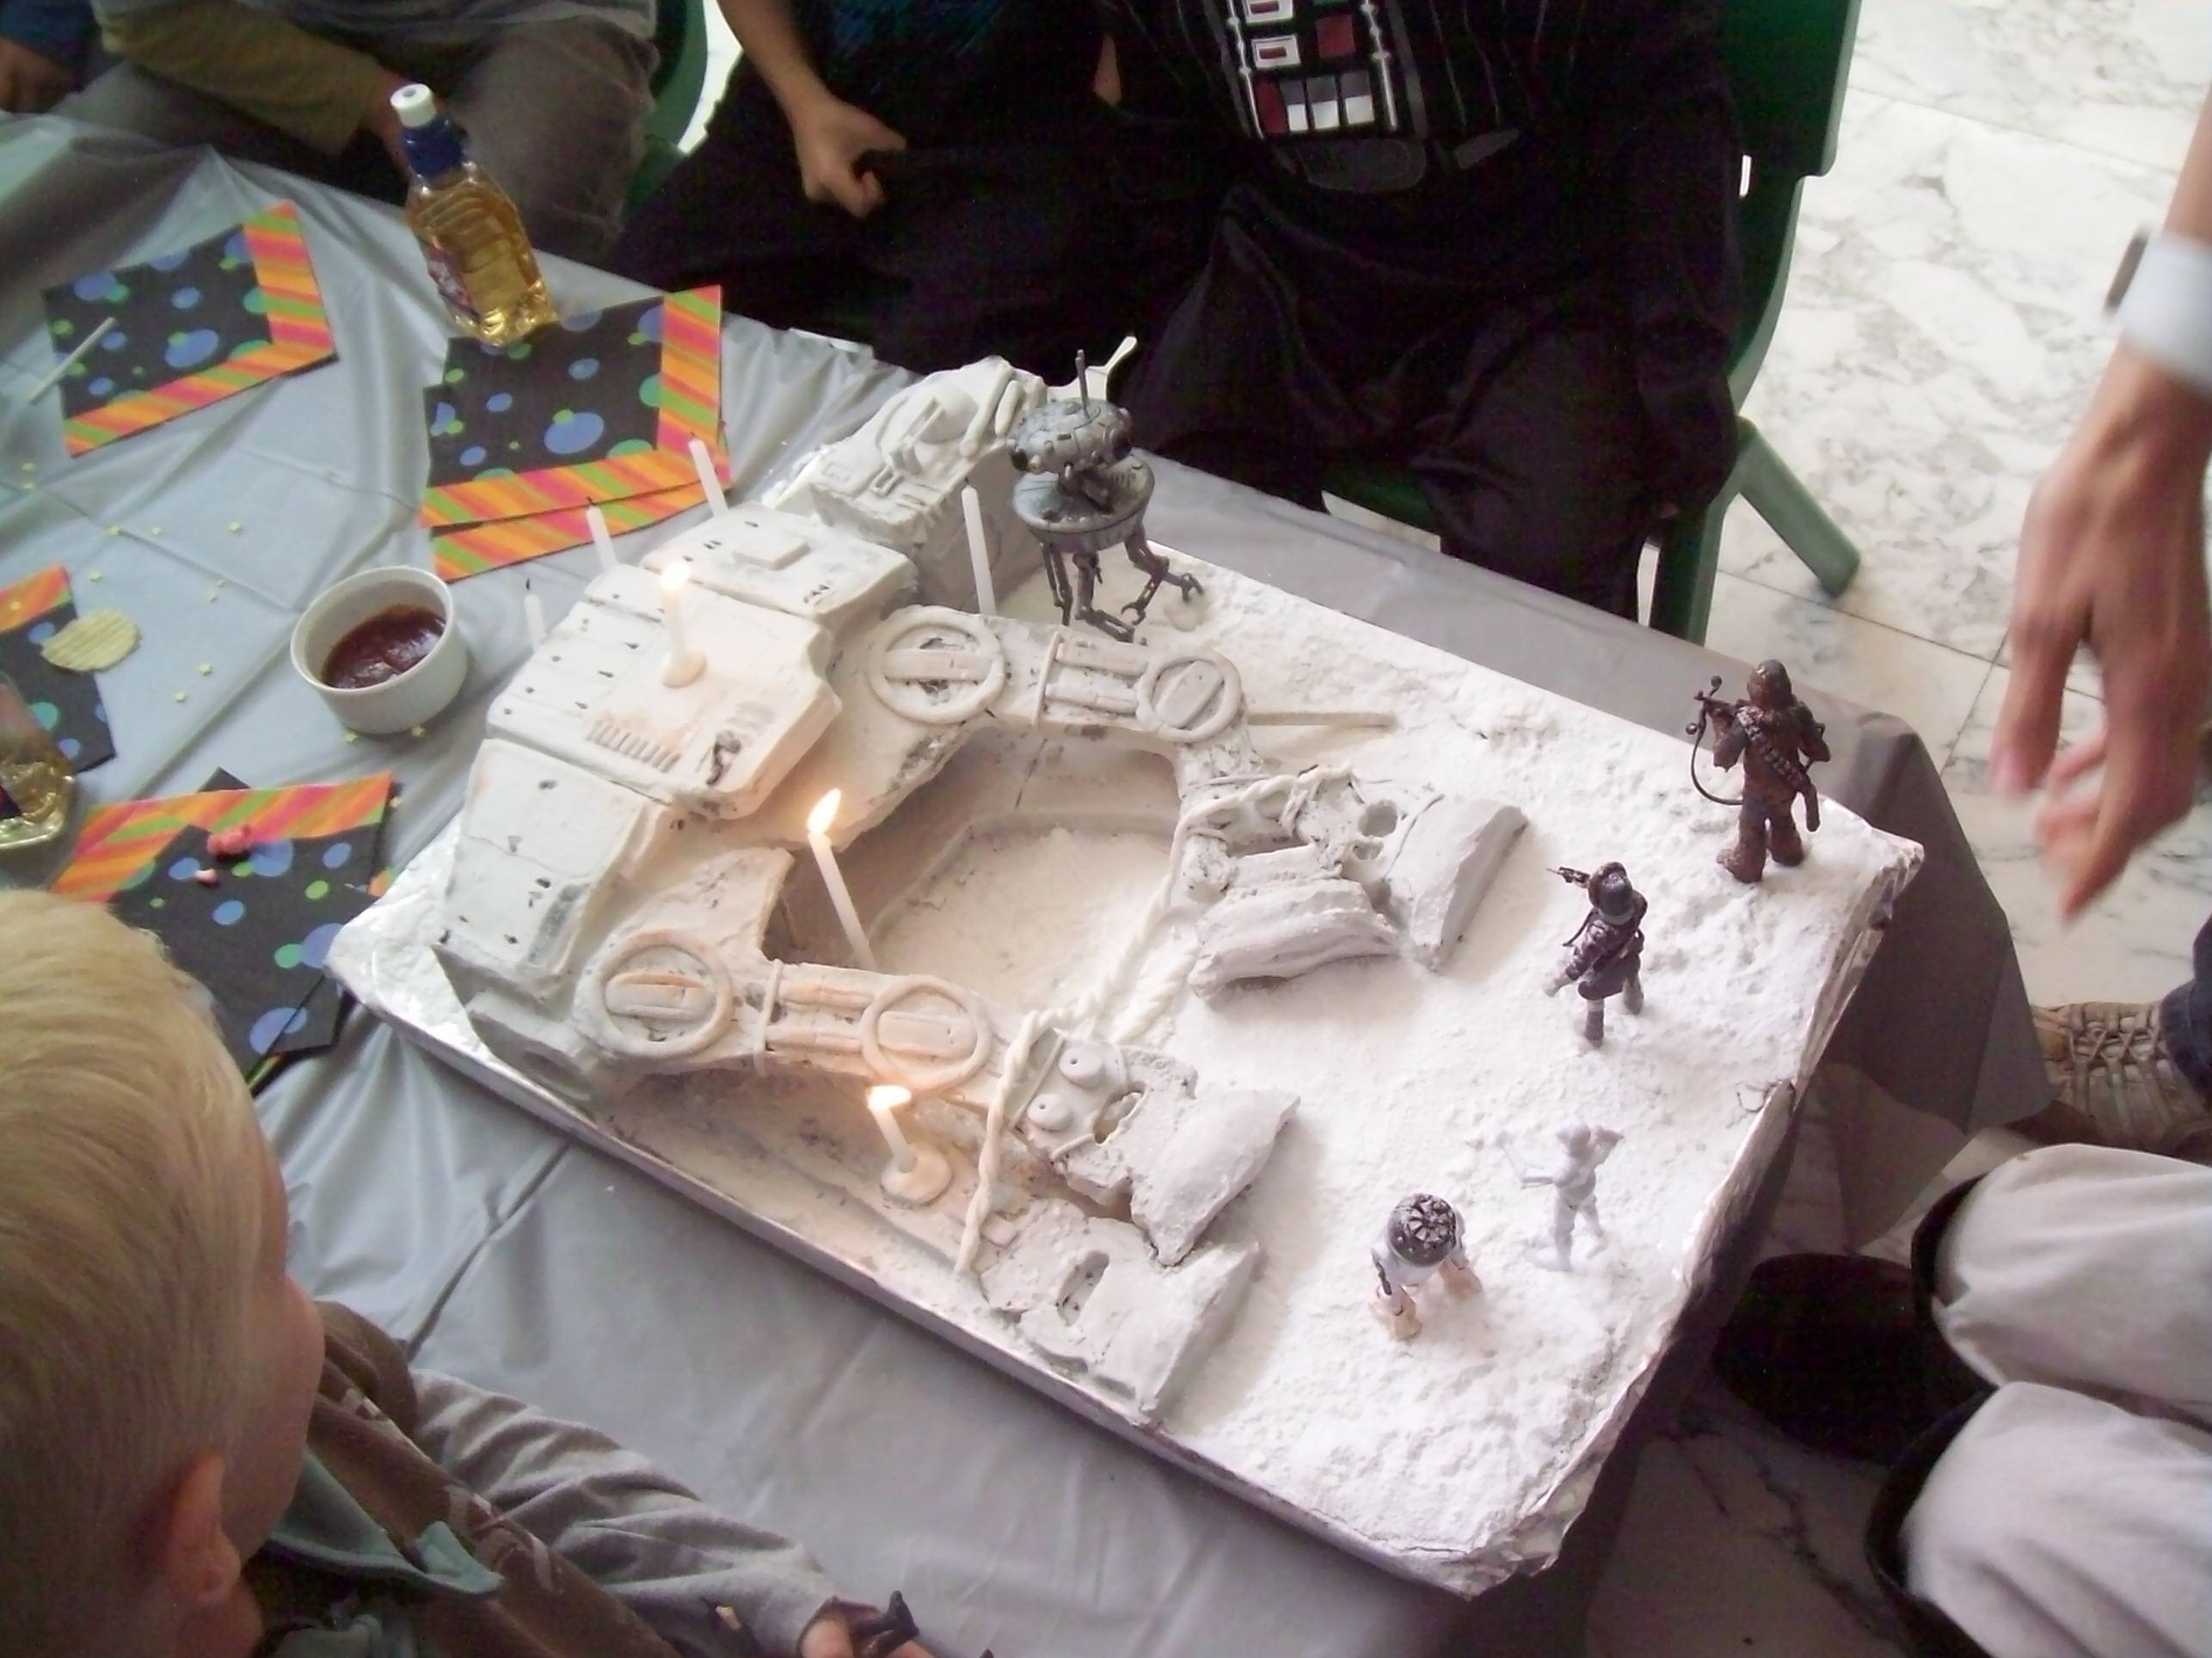 Howtocookthat Cakes Dessert Amp Chocolate Star Wars At